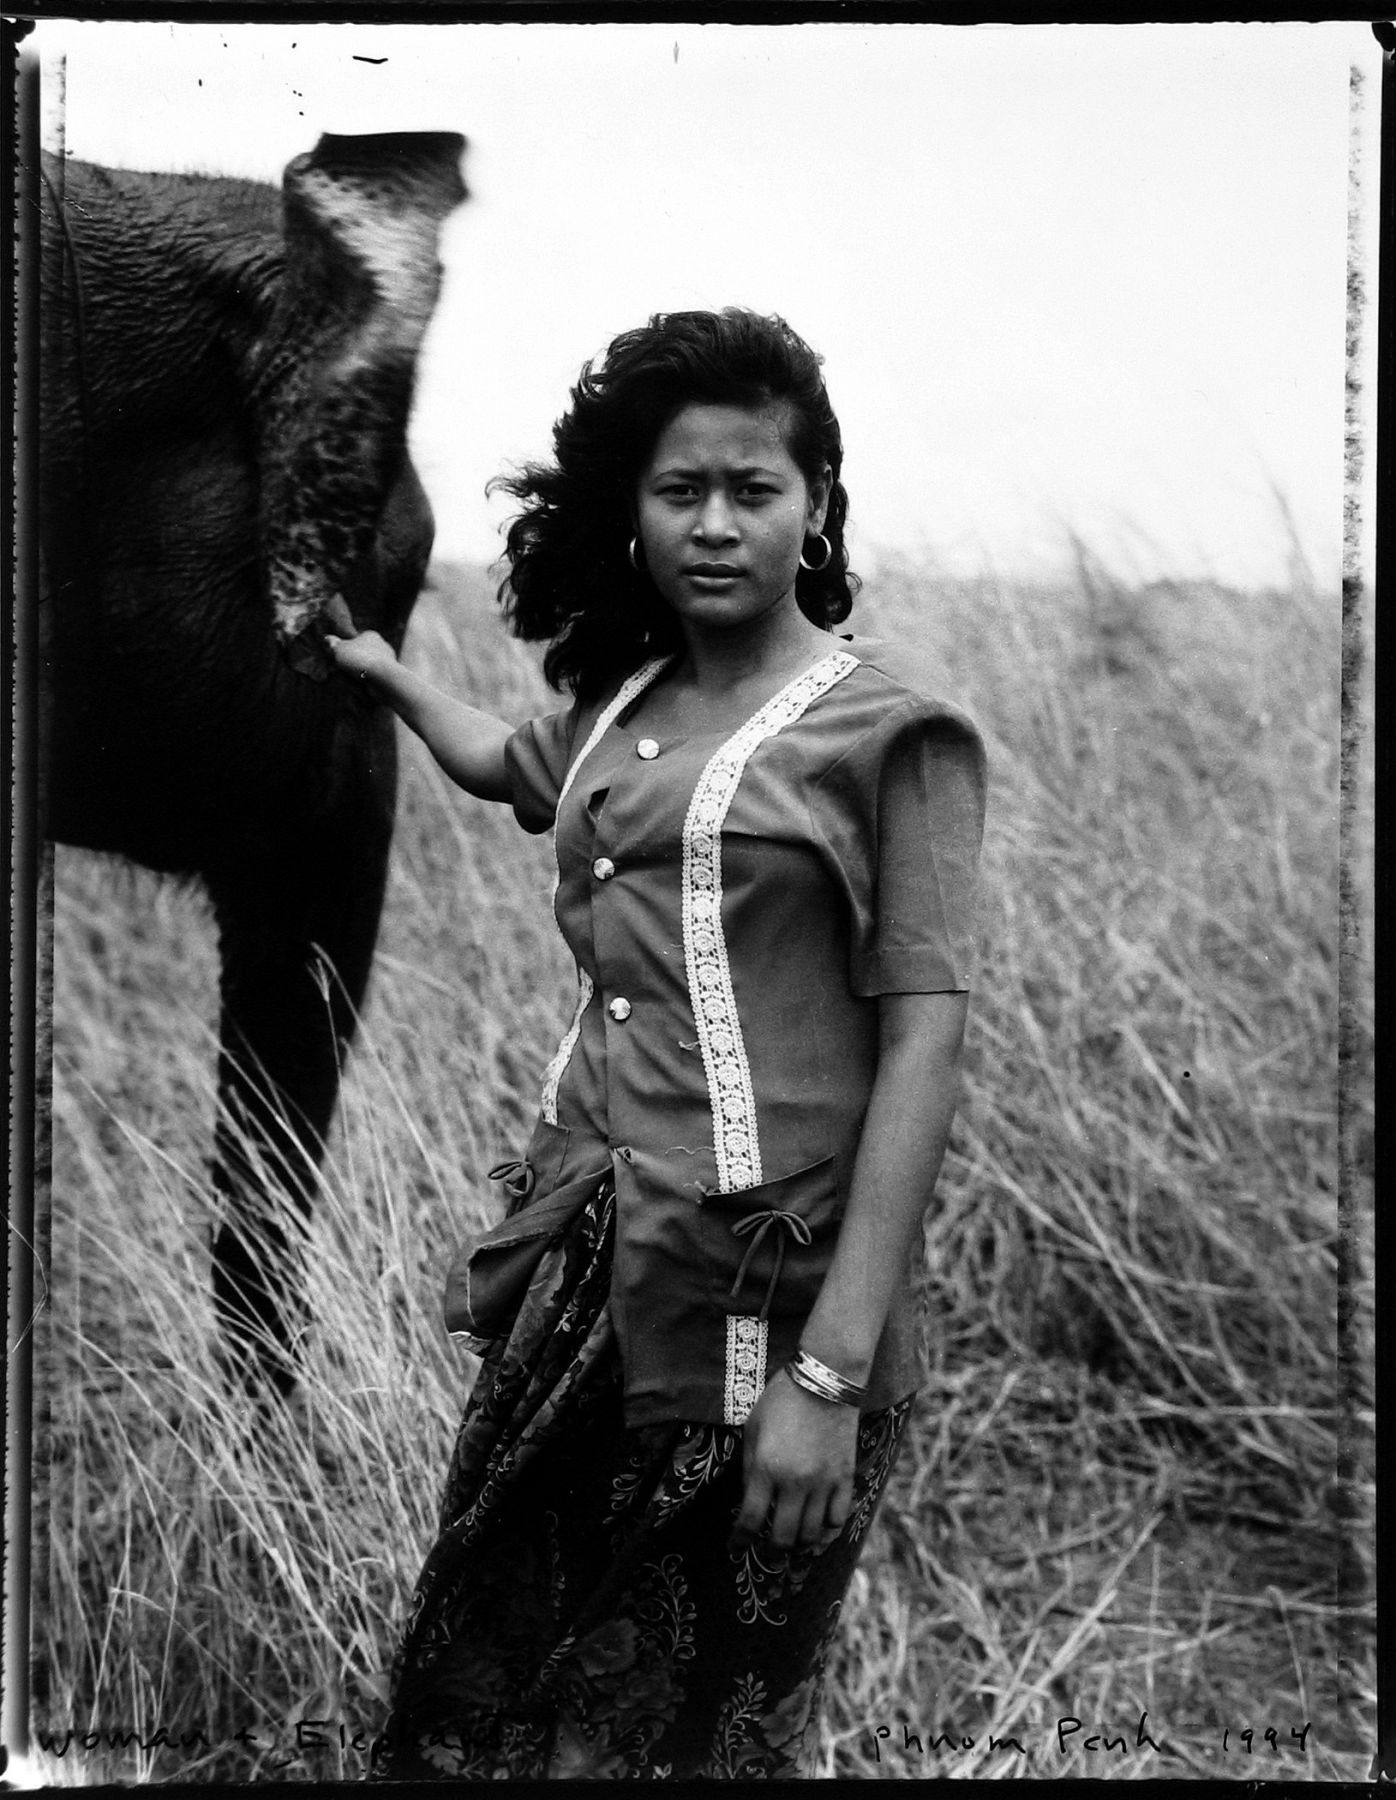 Bill Burke - Woman and elephant, Phnom Penh, 1994 - Howard Greenberg Gallery